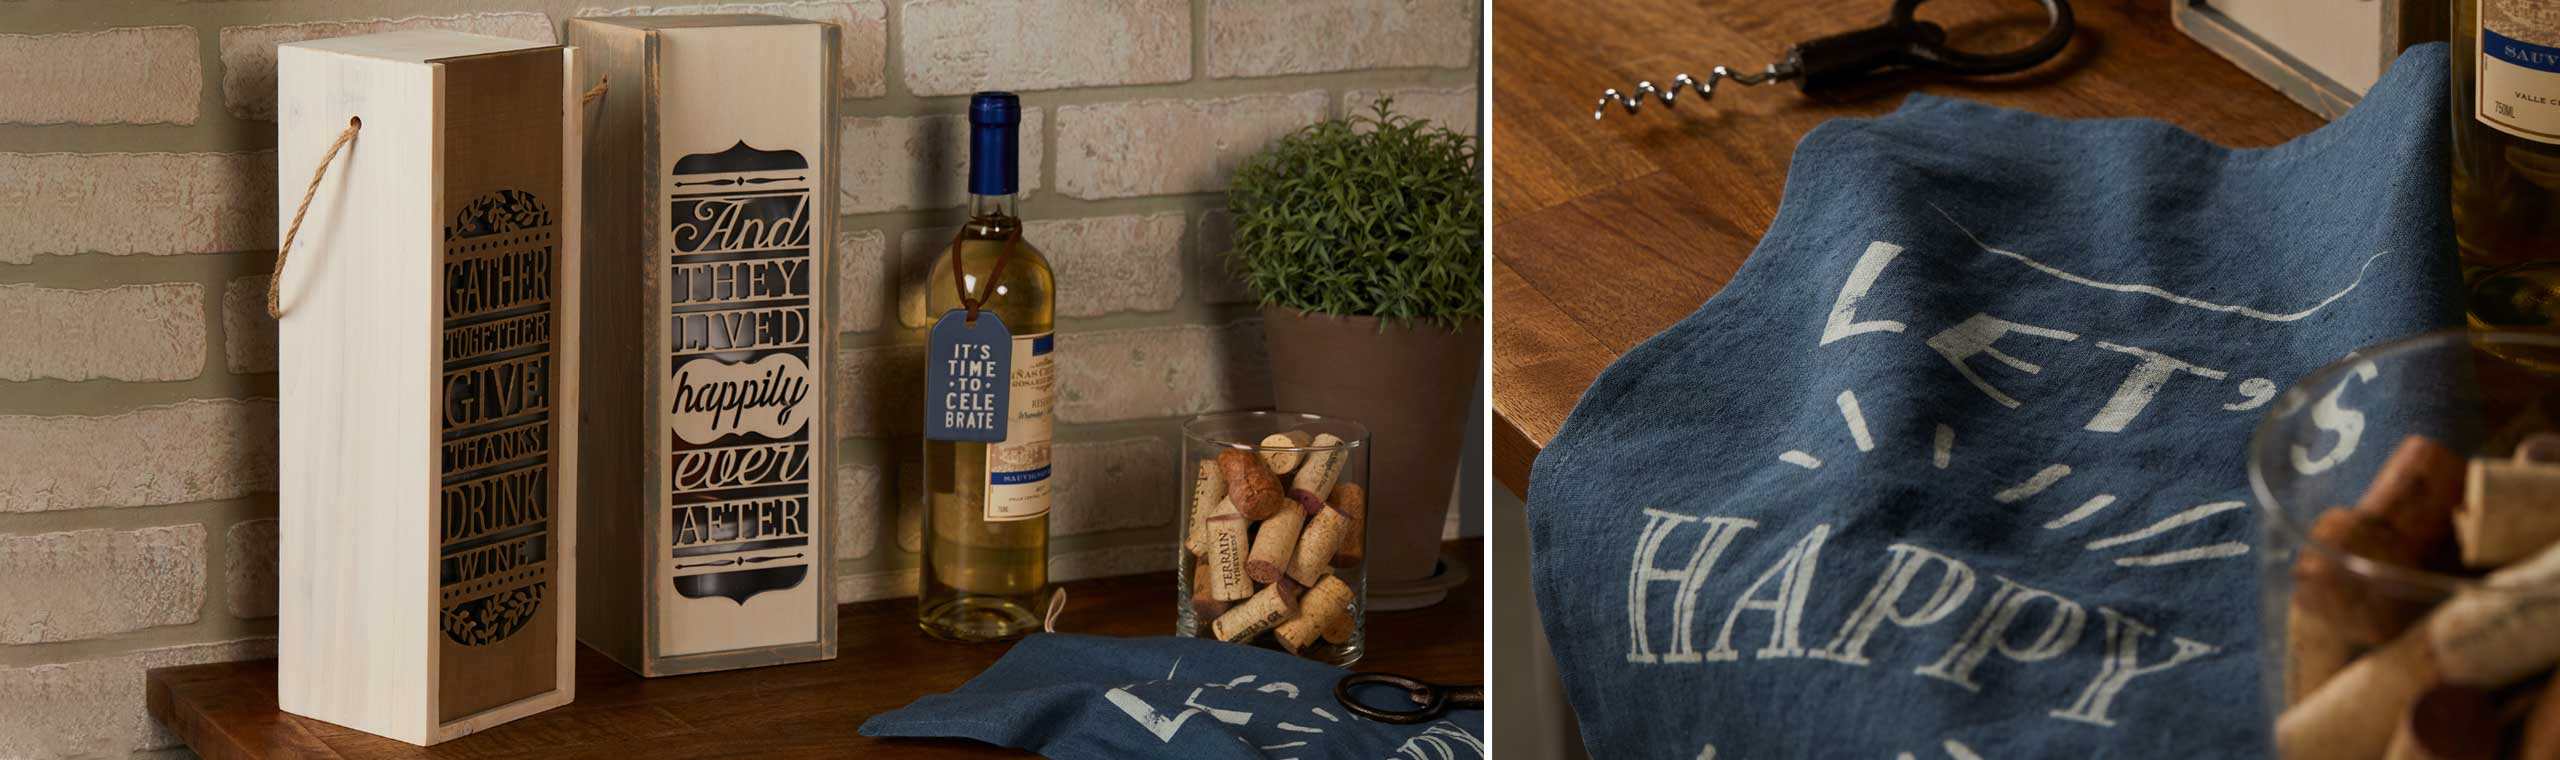 wooden wine bottle cases with a wine bottle sitting out on the side and another image of a blue apron sitting on a wooden table